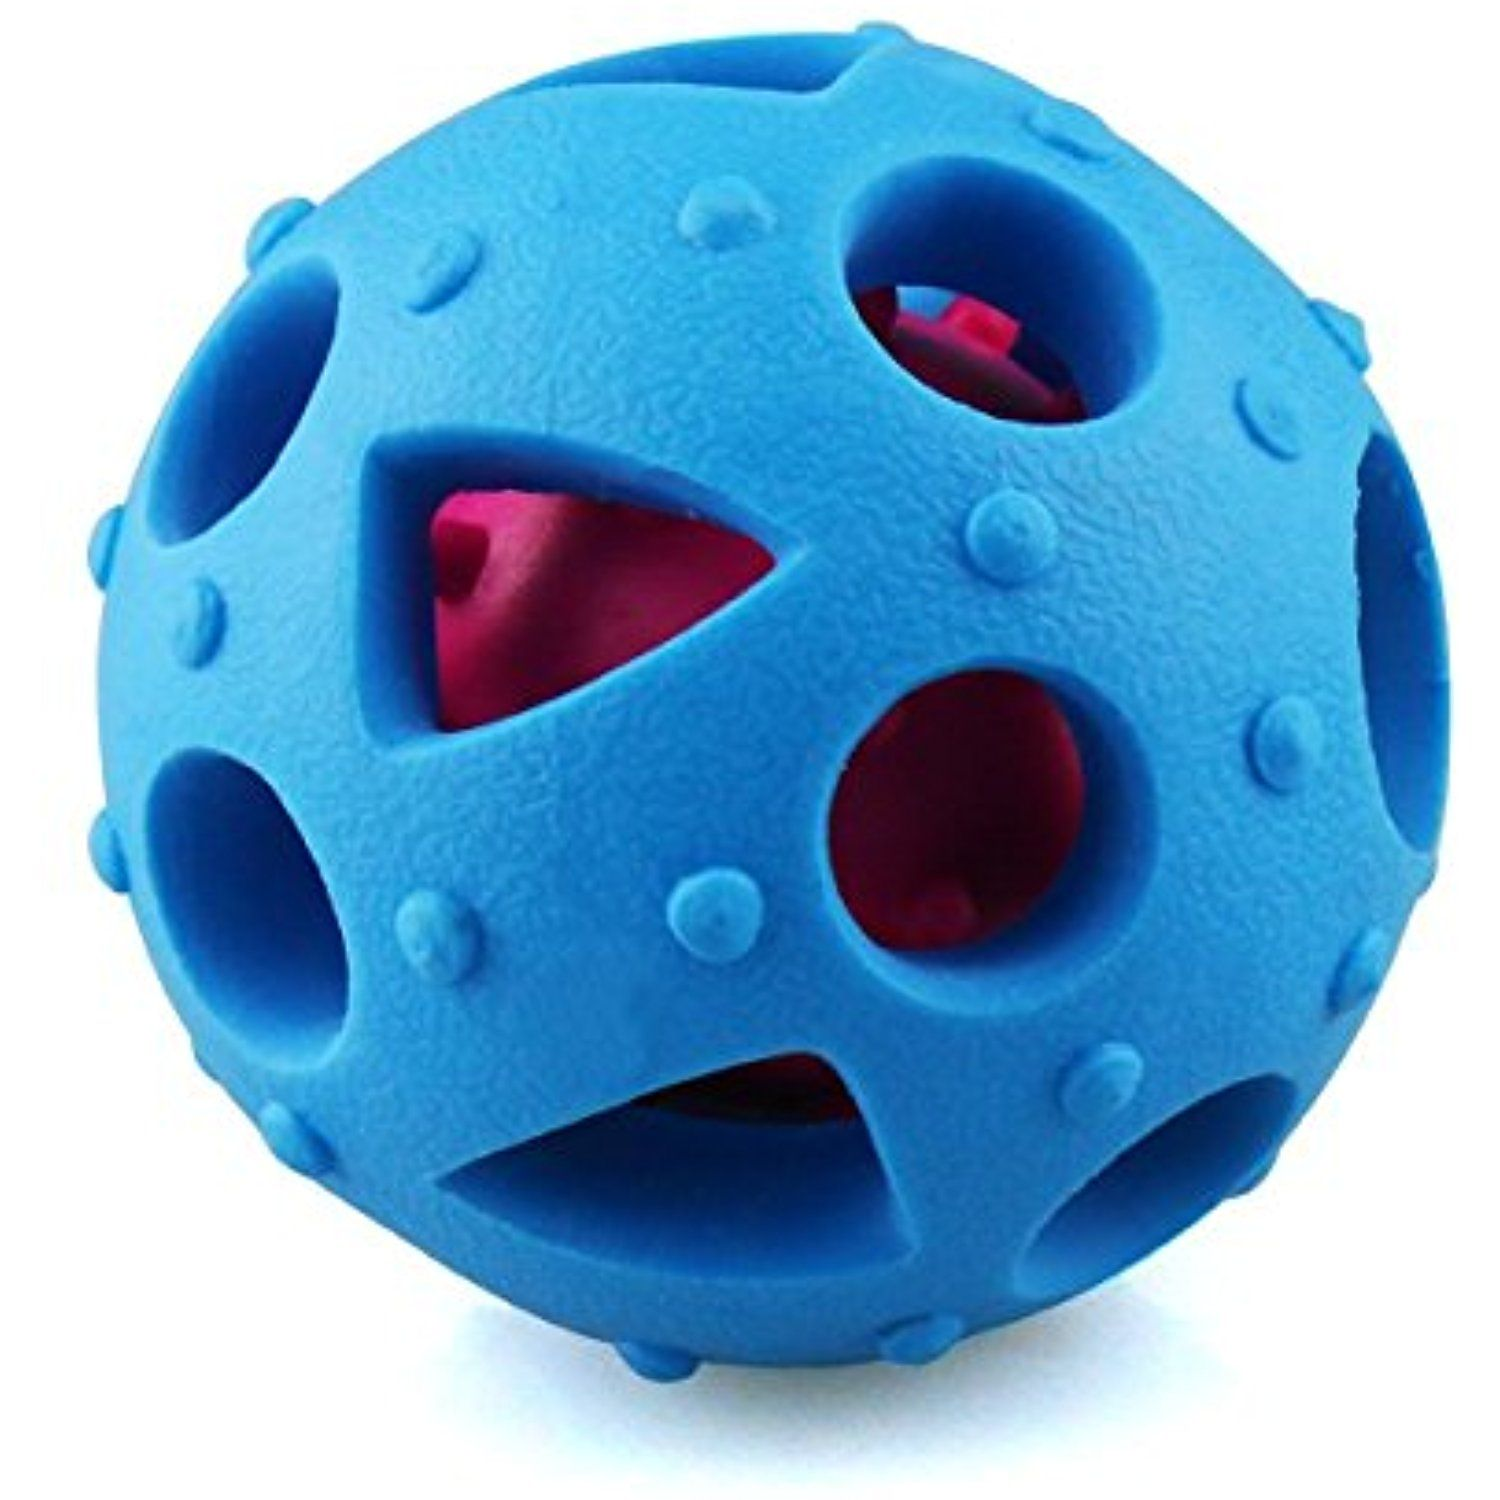 Interactive Dog Toys Dog toys ball and treat dispensing for small